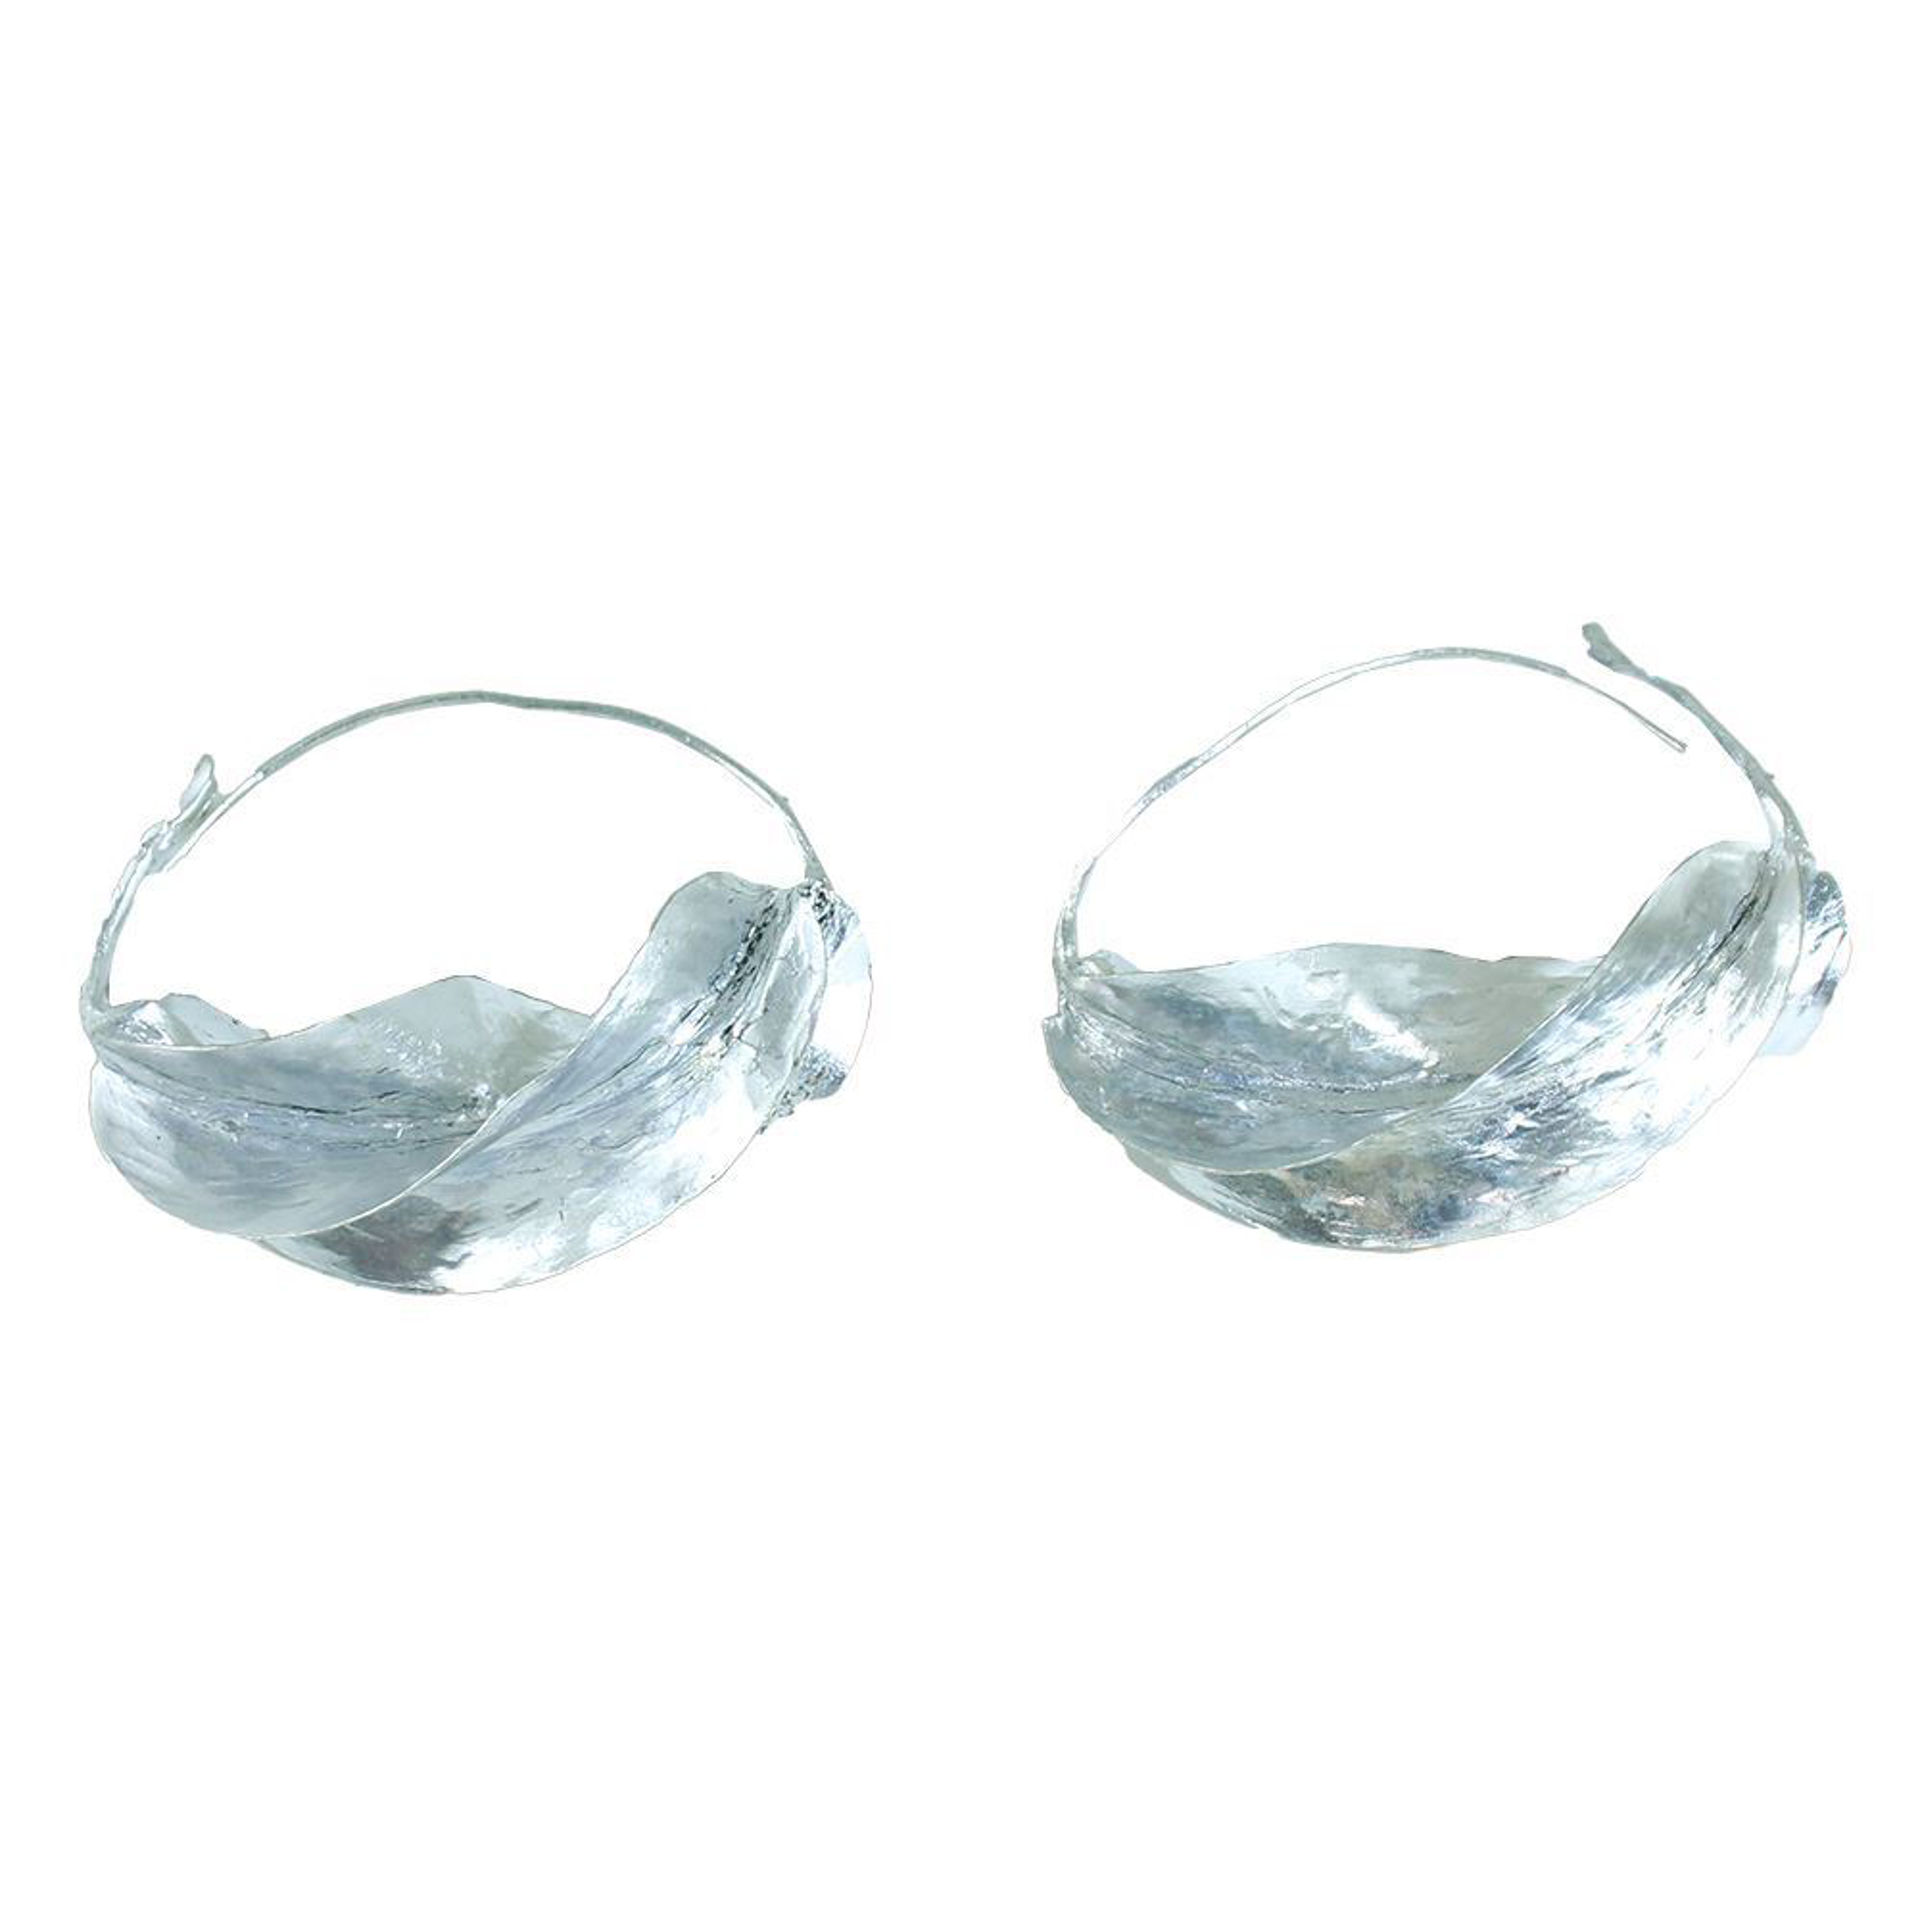 Picture of XL Over-Sized Fula Silver Earrings - 3""